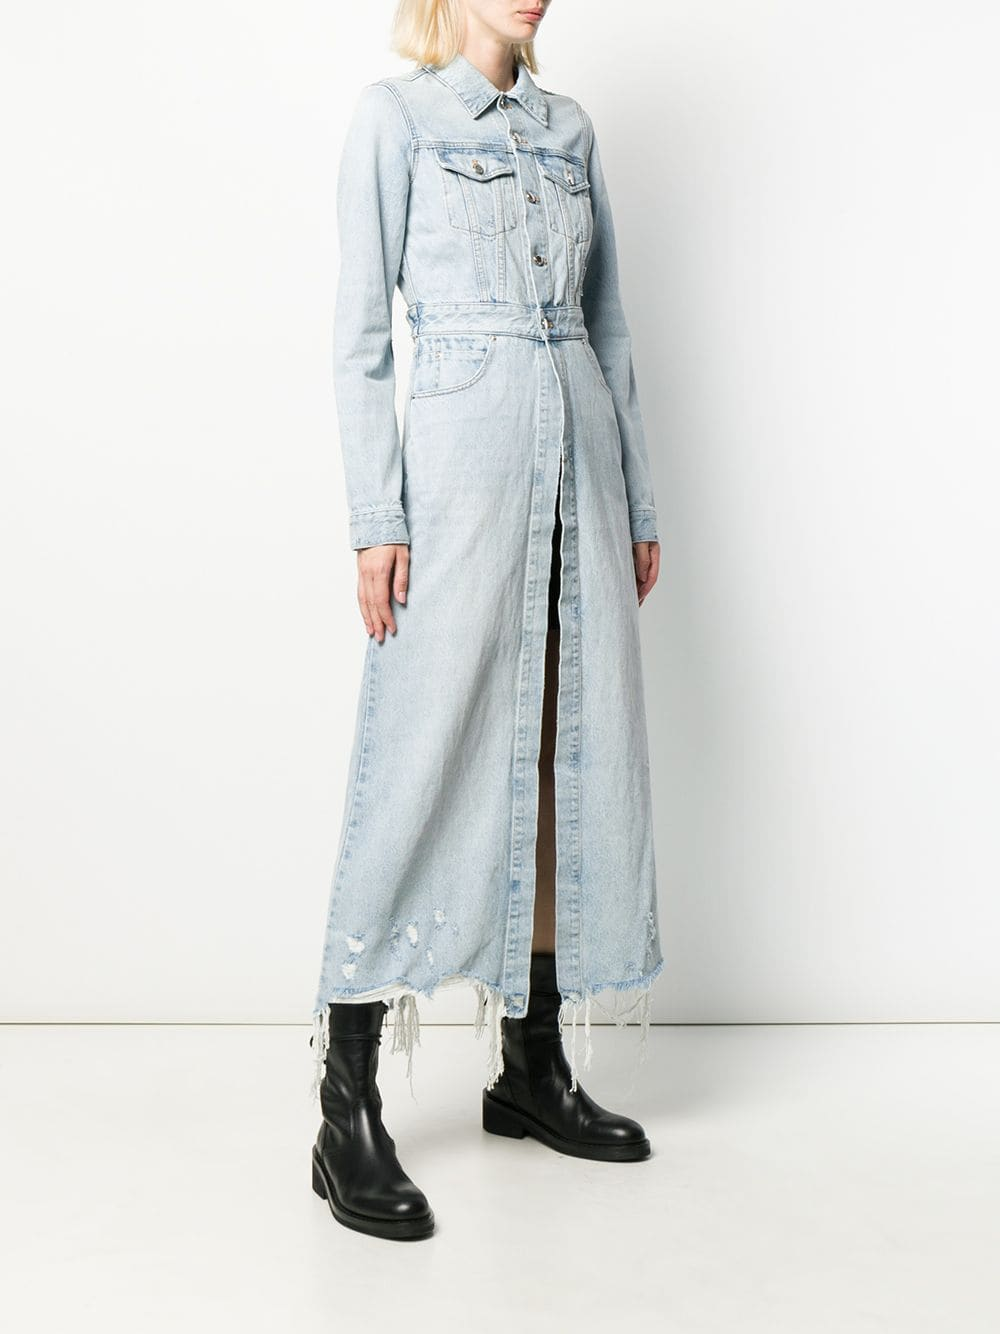 ALEXANDER WANG WOMEN FITTED DENIM TRENCH COAT